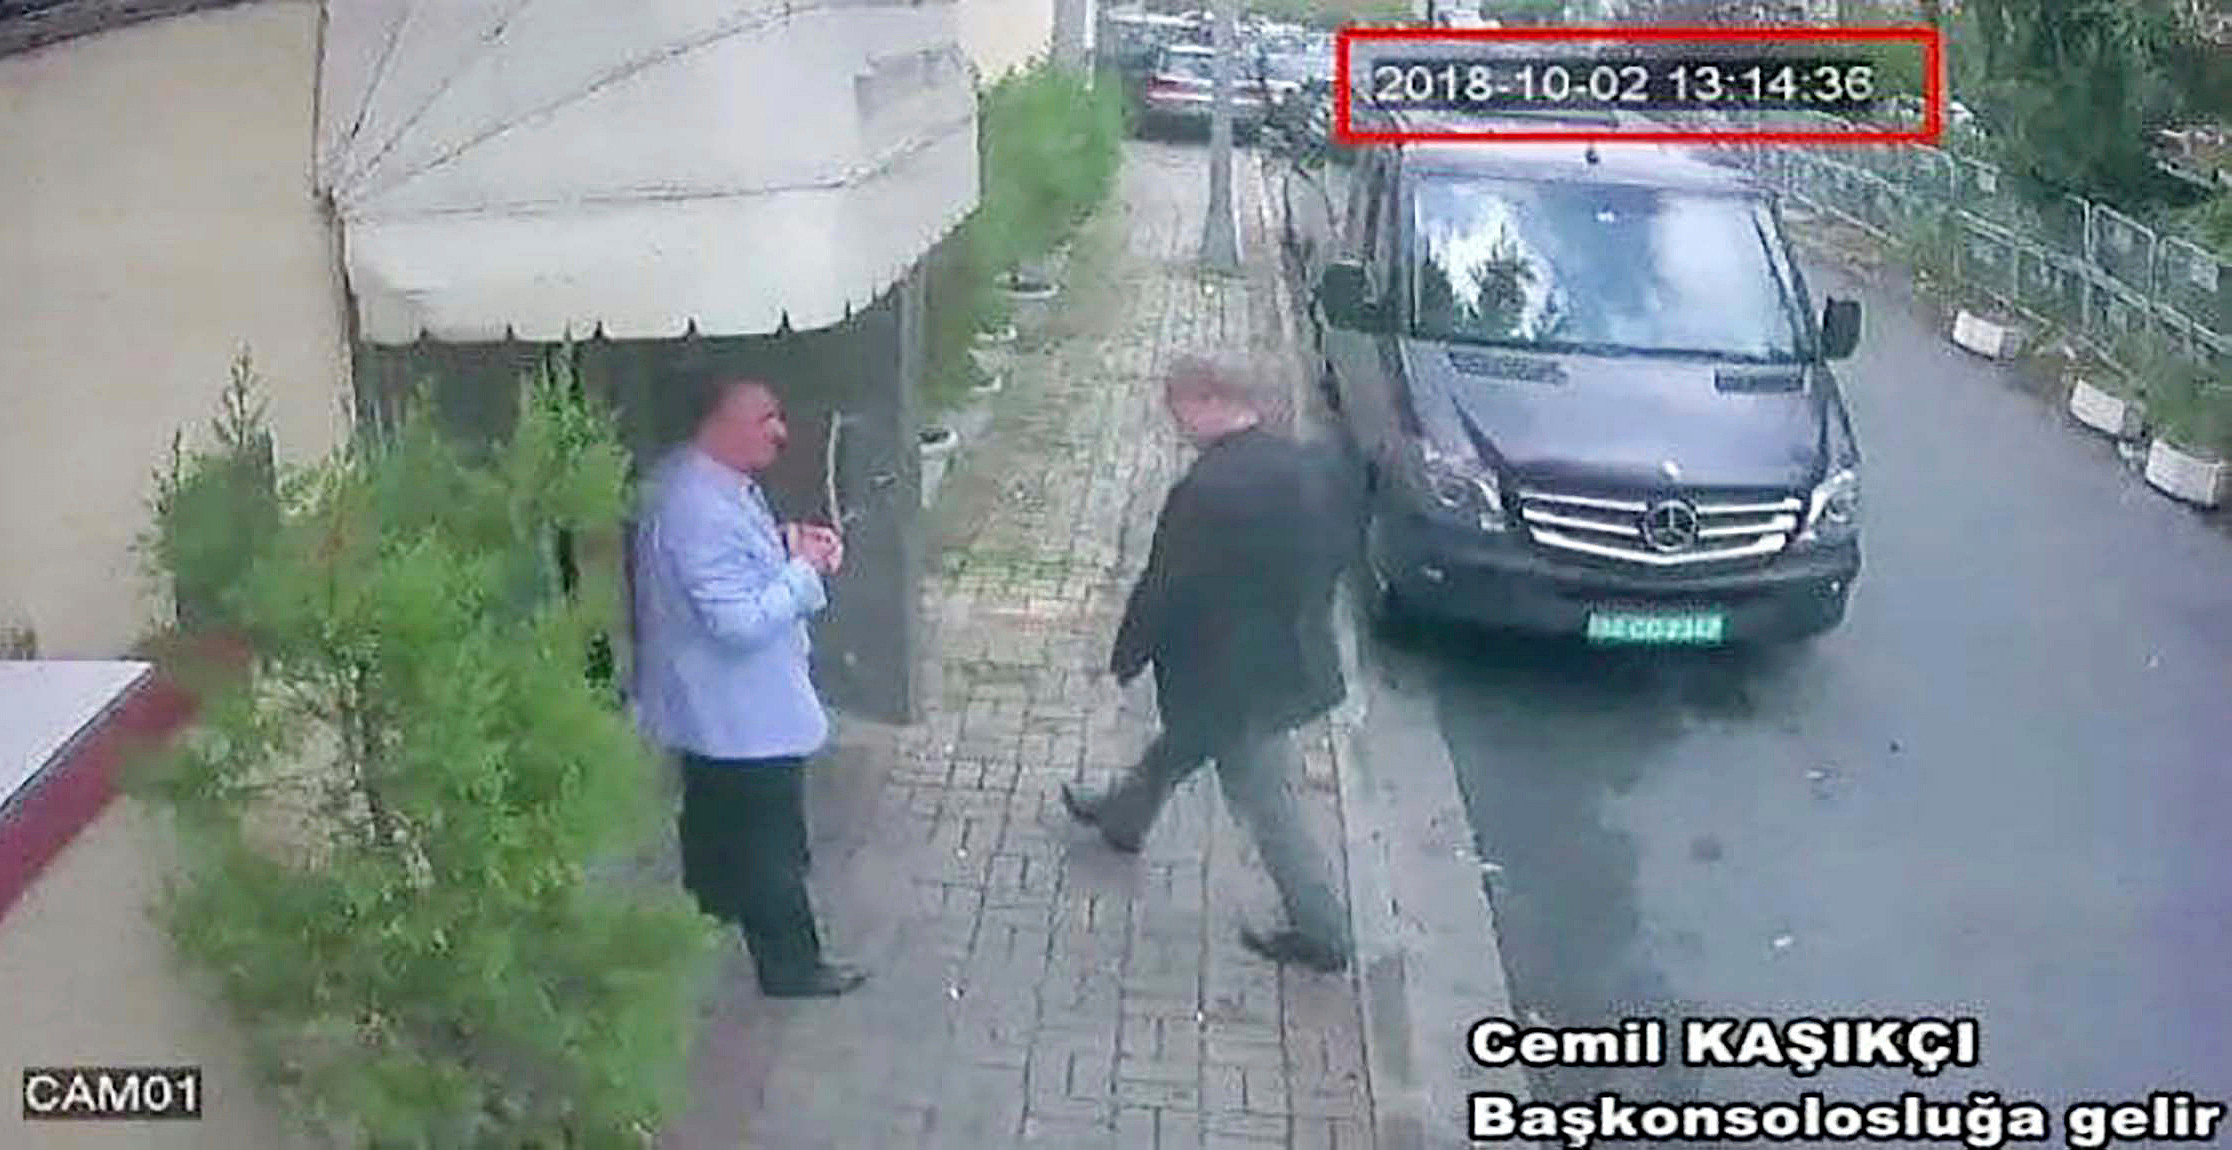 CCTV showed Saudi journalist Jamal Khashoggi entering the consulate in Turkey but he never came out